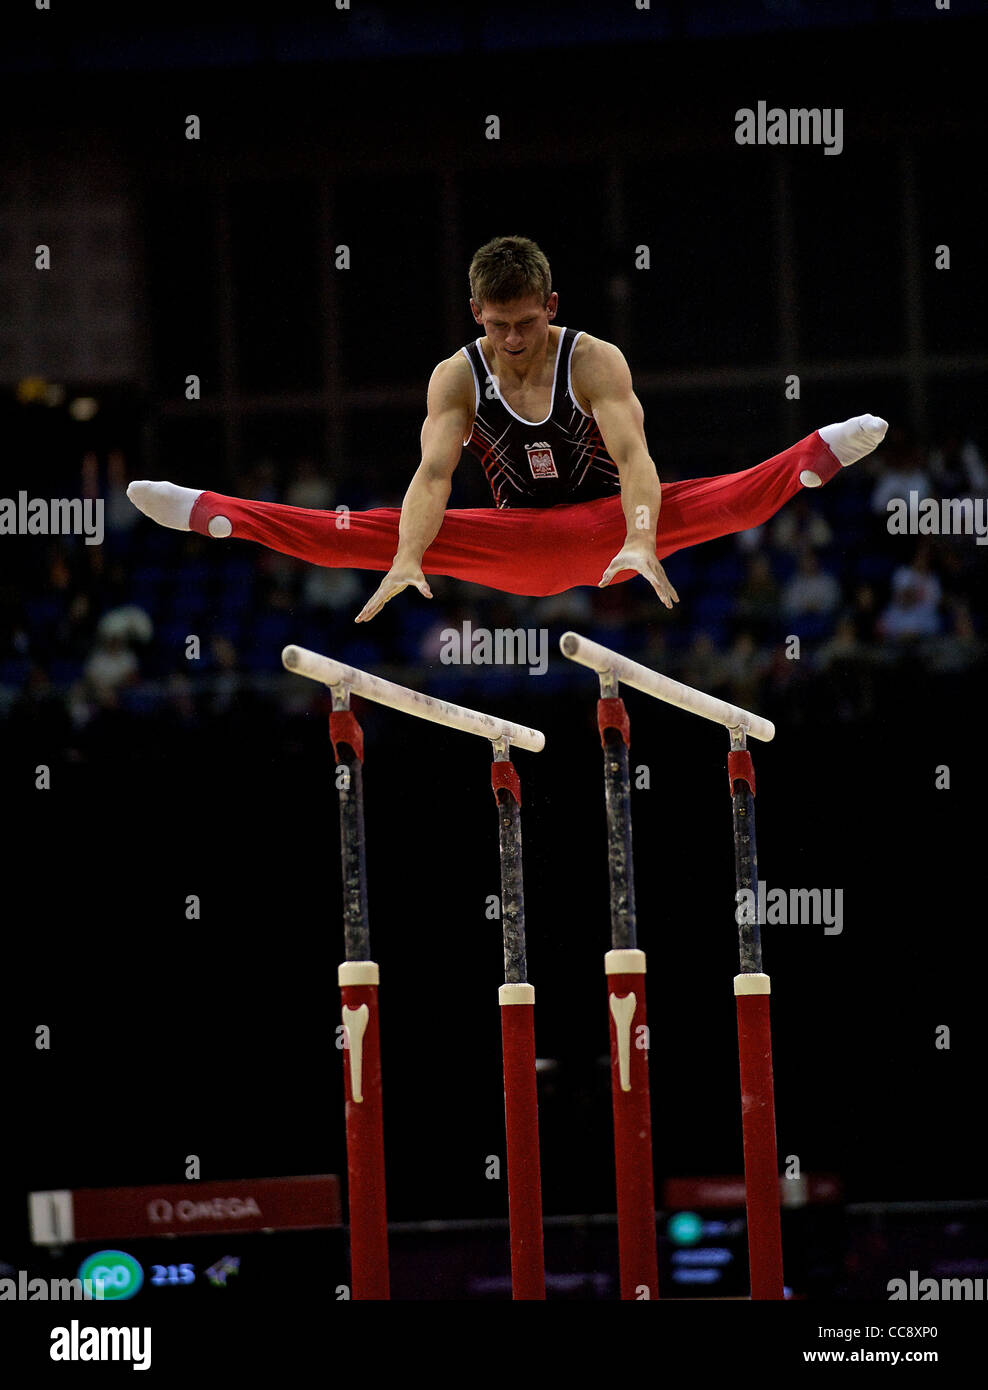 Masahiro YOSHIDA (JPN), competes in the parallel bars, The London Prepares Visa International Gymnastics - Stock Image